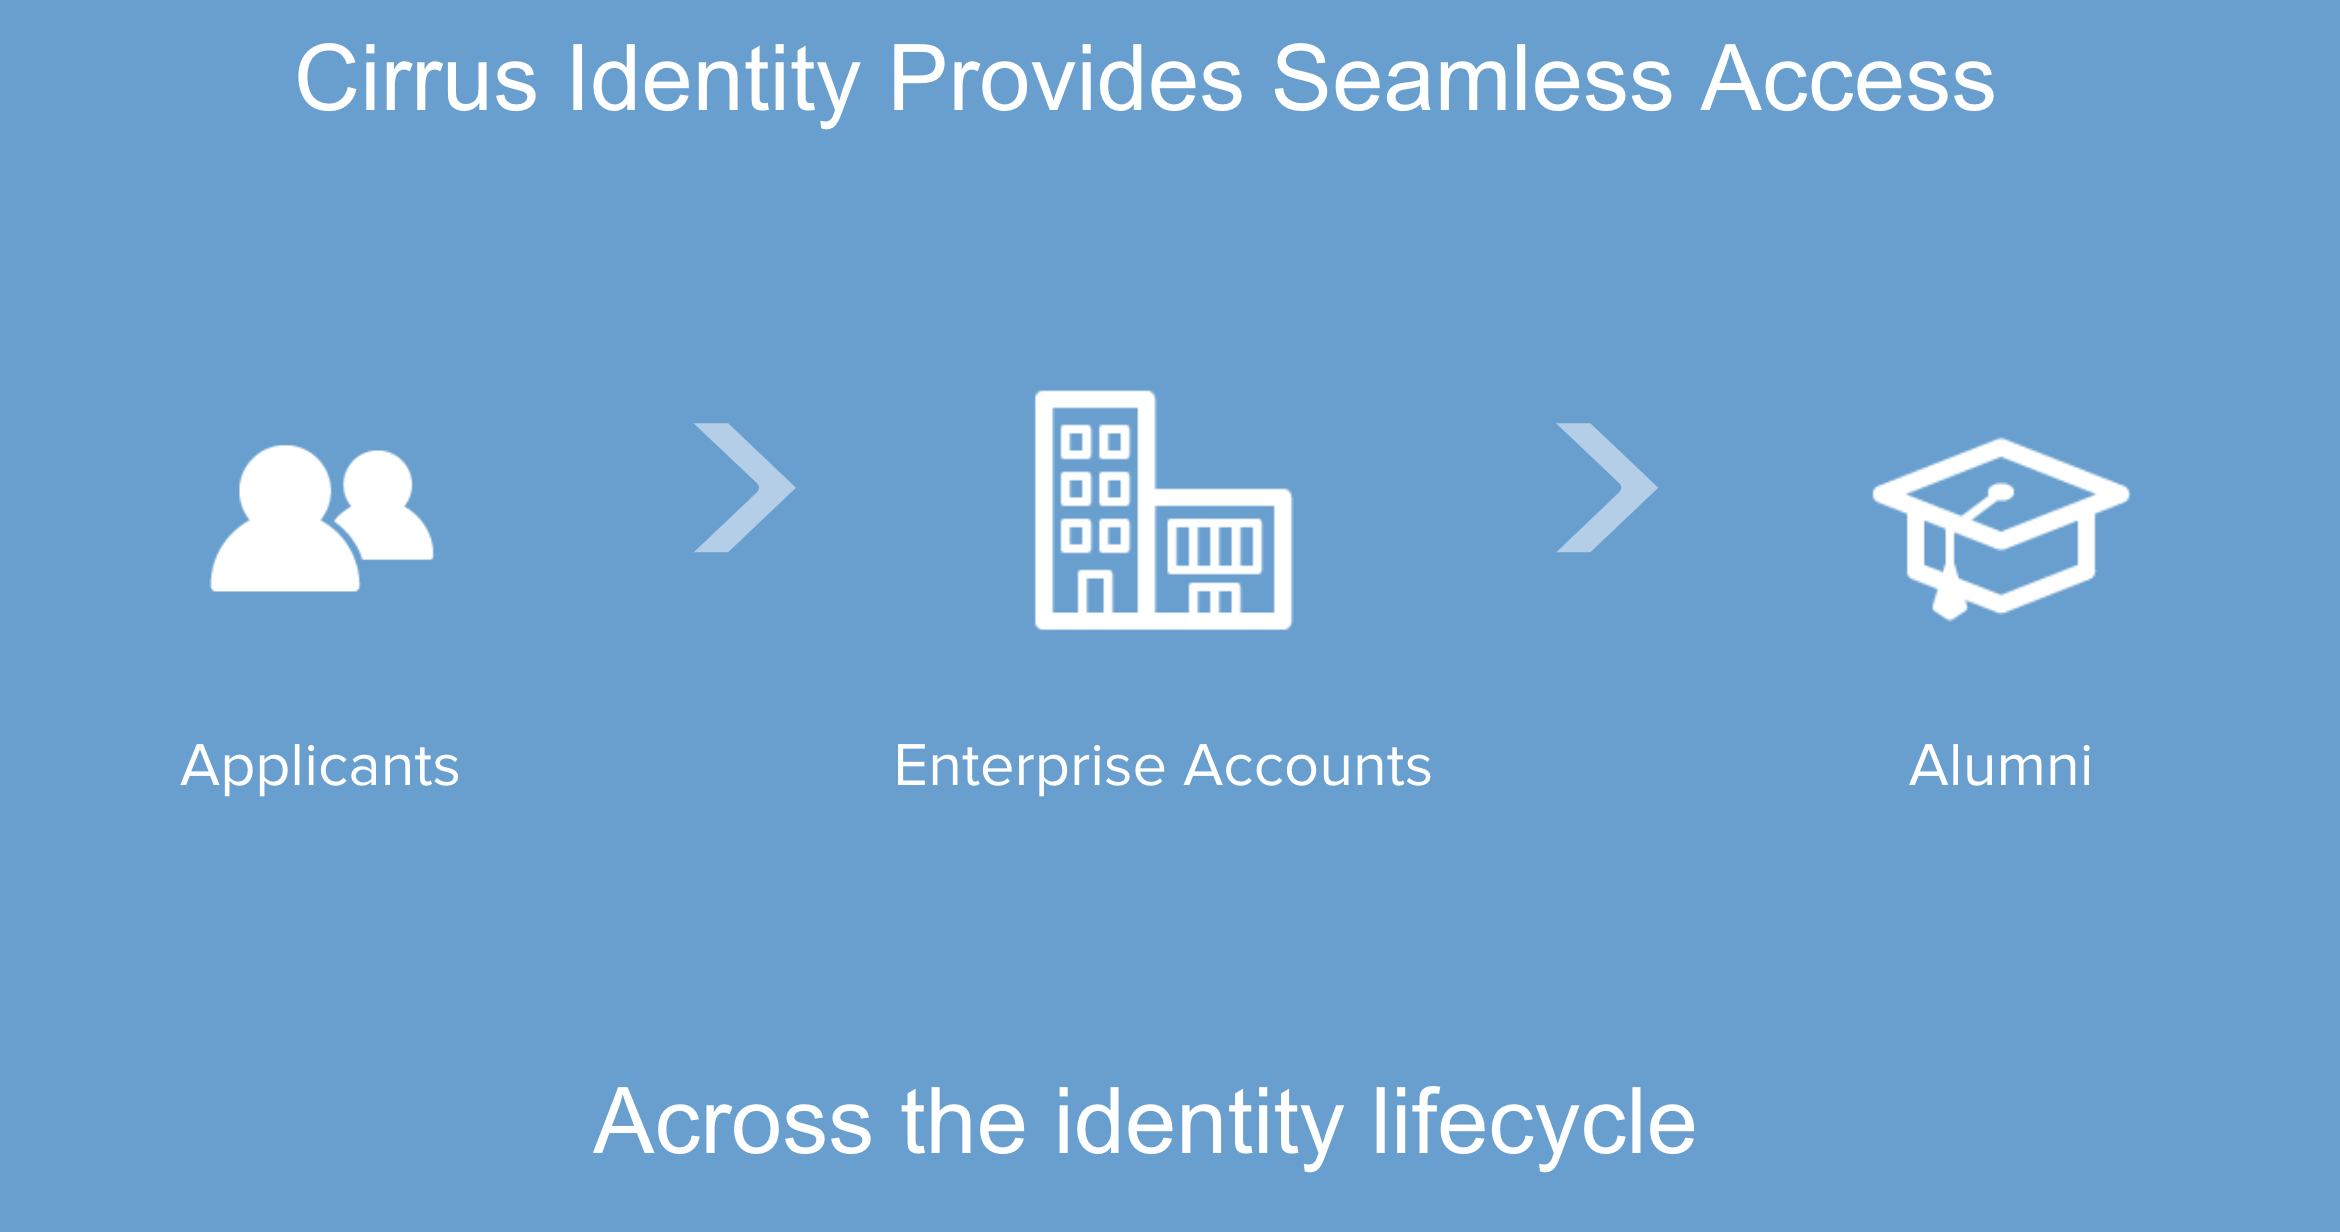 Cirrus Identity provides seamless for applicants, enterprise accounts and alumni across the identity life cycle.